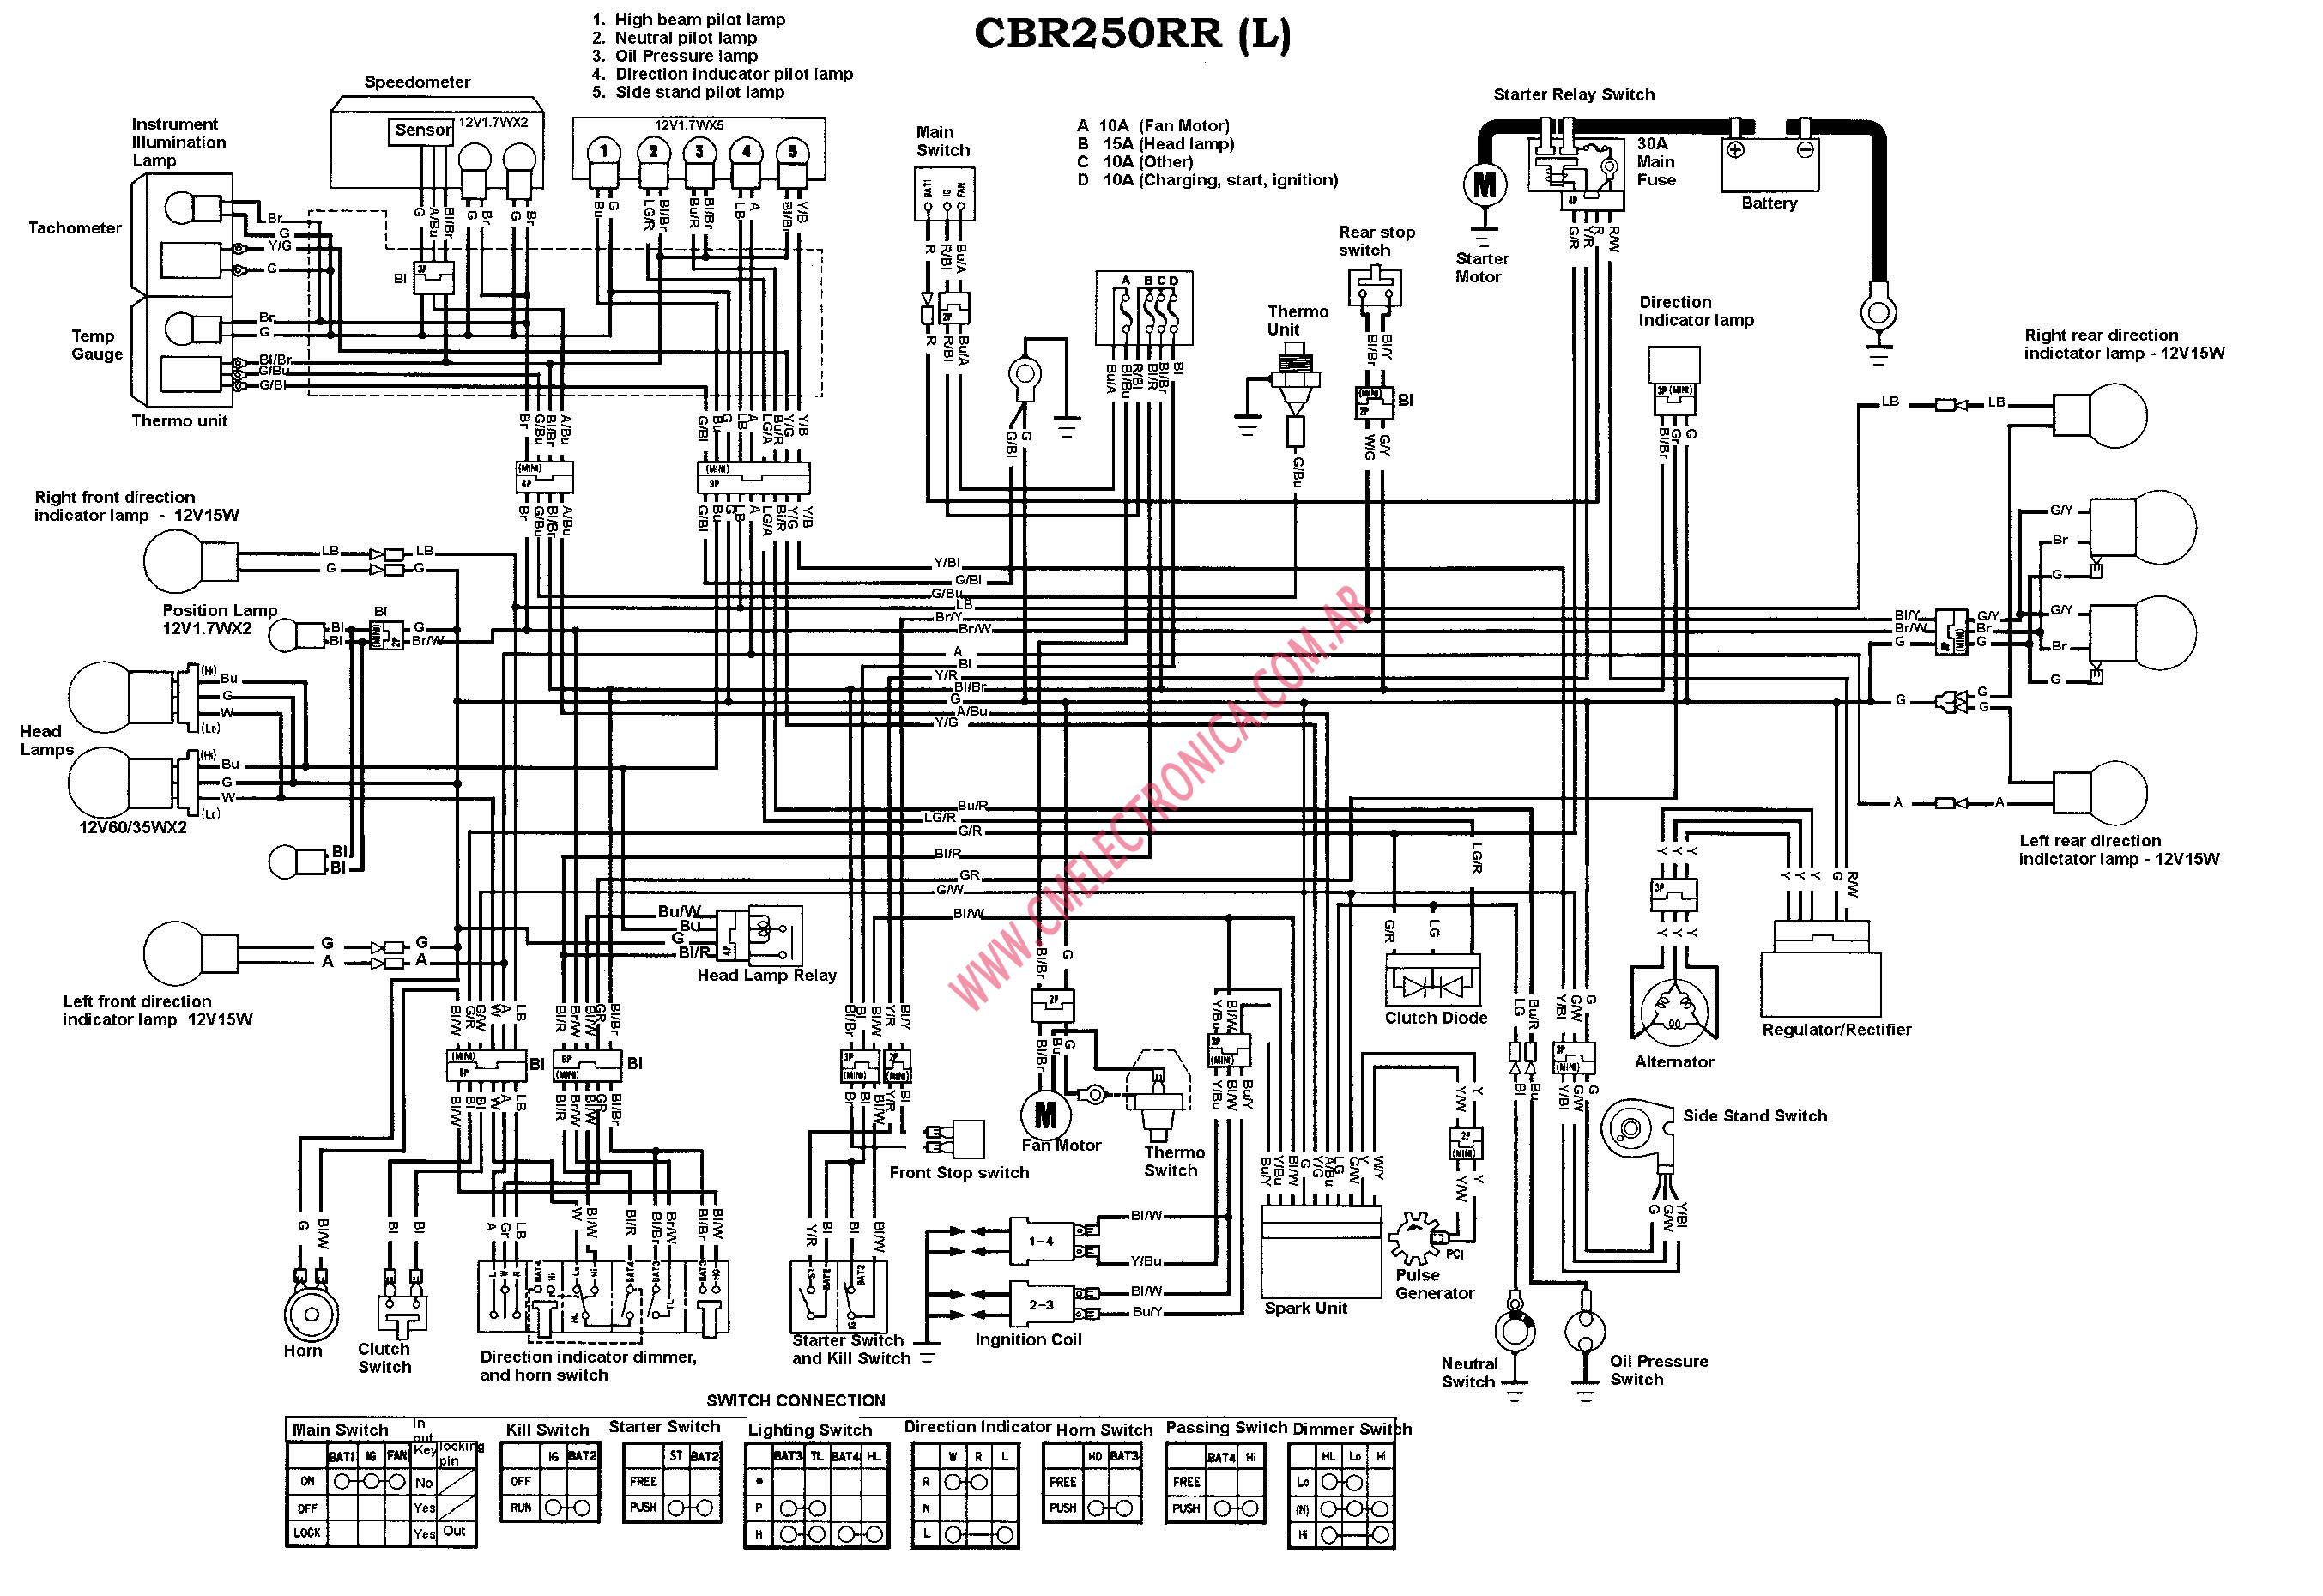 delco radio wiring diagram 1988 with Cbr250 Wiring Diagram on Delphi Radio Wiring Diagram Ac additionally Showthread in addition Gmc Envoy Stereo Wiring Diagram Wiring Diagrams likewise Chevy Alternator Wiring Diagram The Hamb also ments.